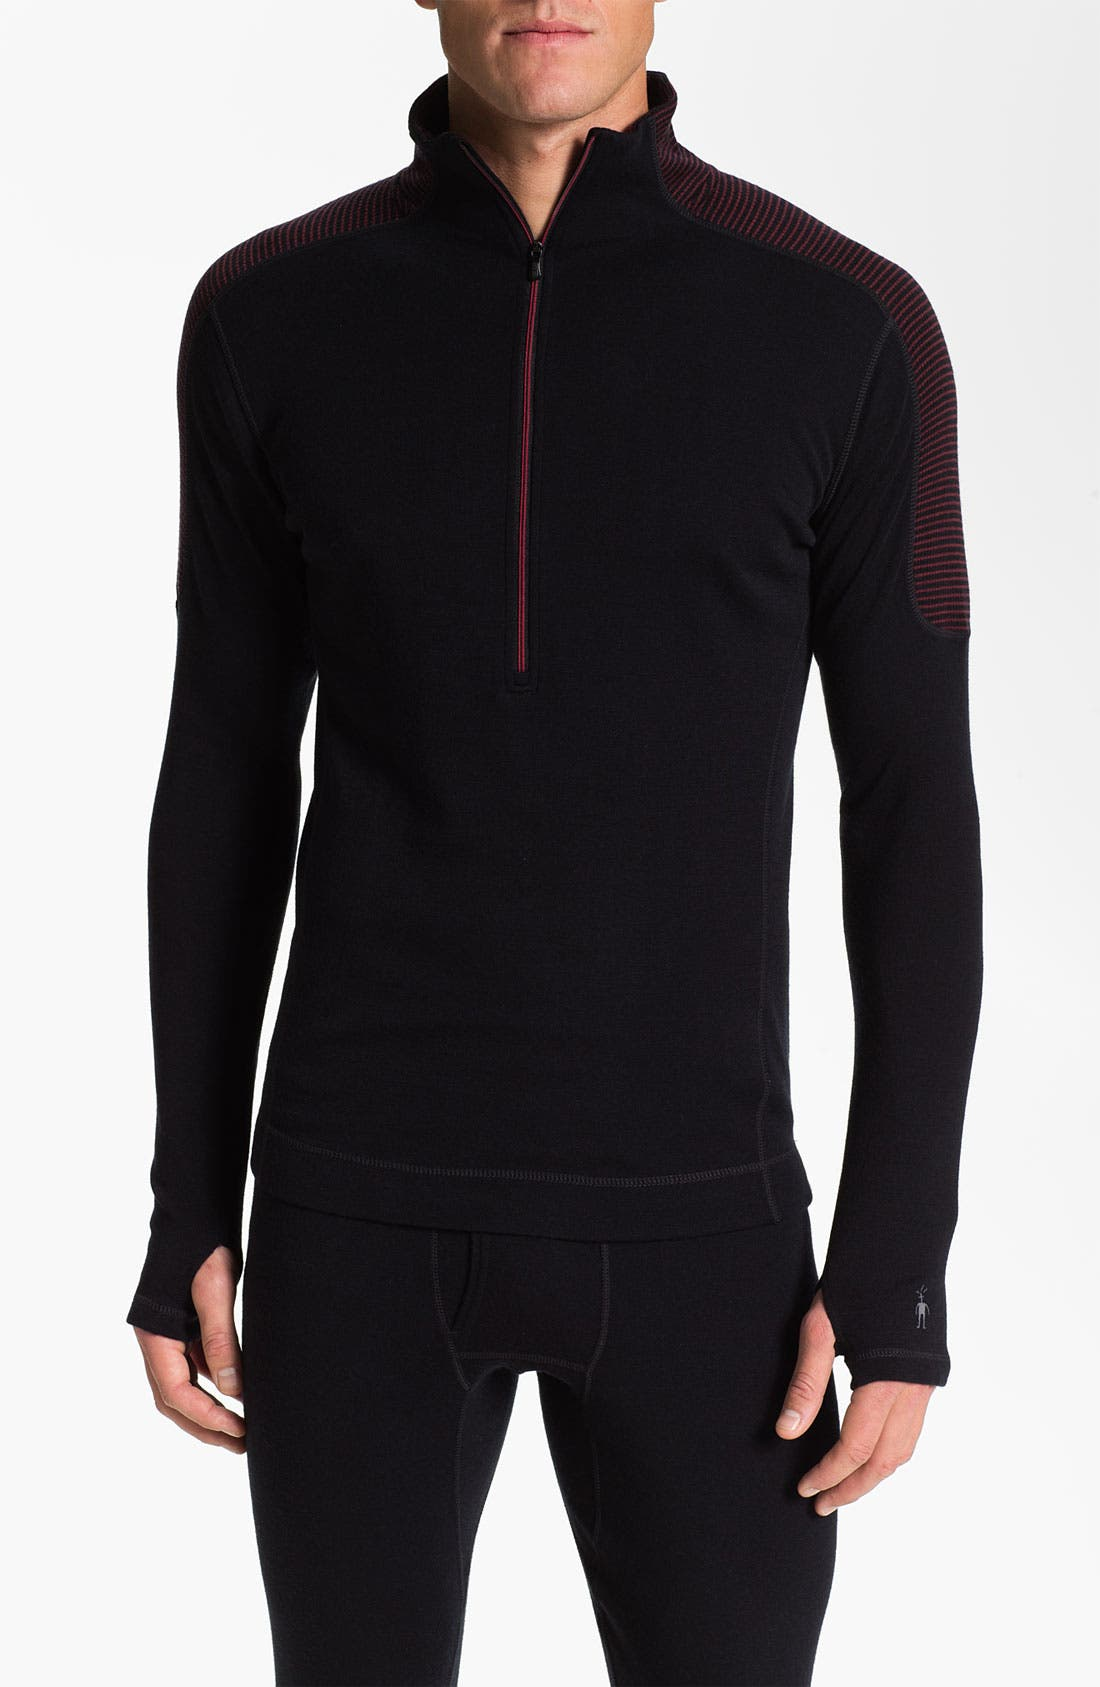 Alternate Image 1 Selected - Smartwool 'Midweight 250' Half Zip Pullover